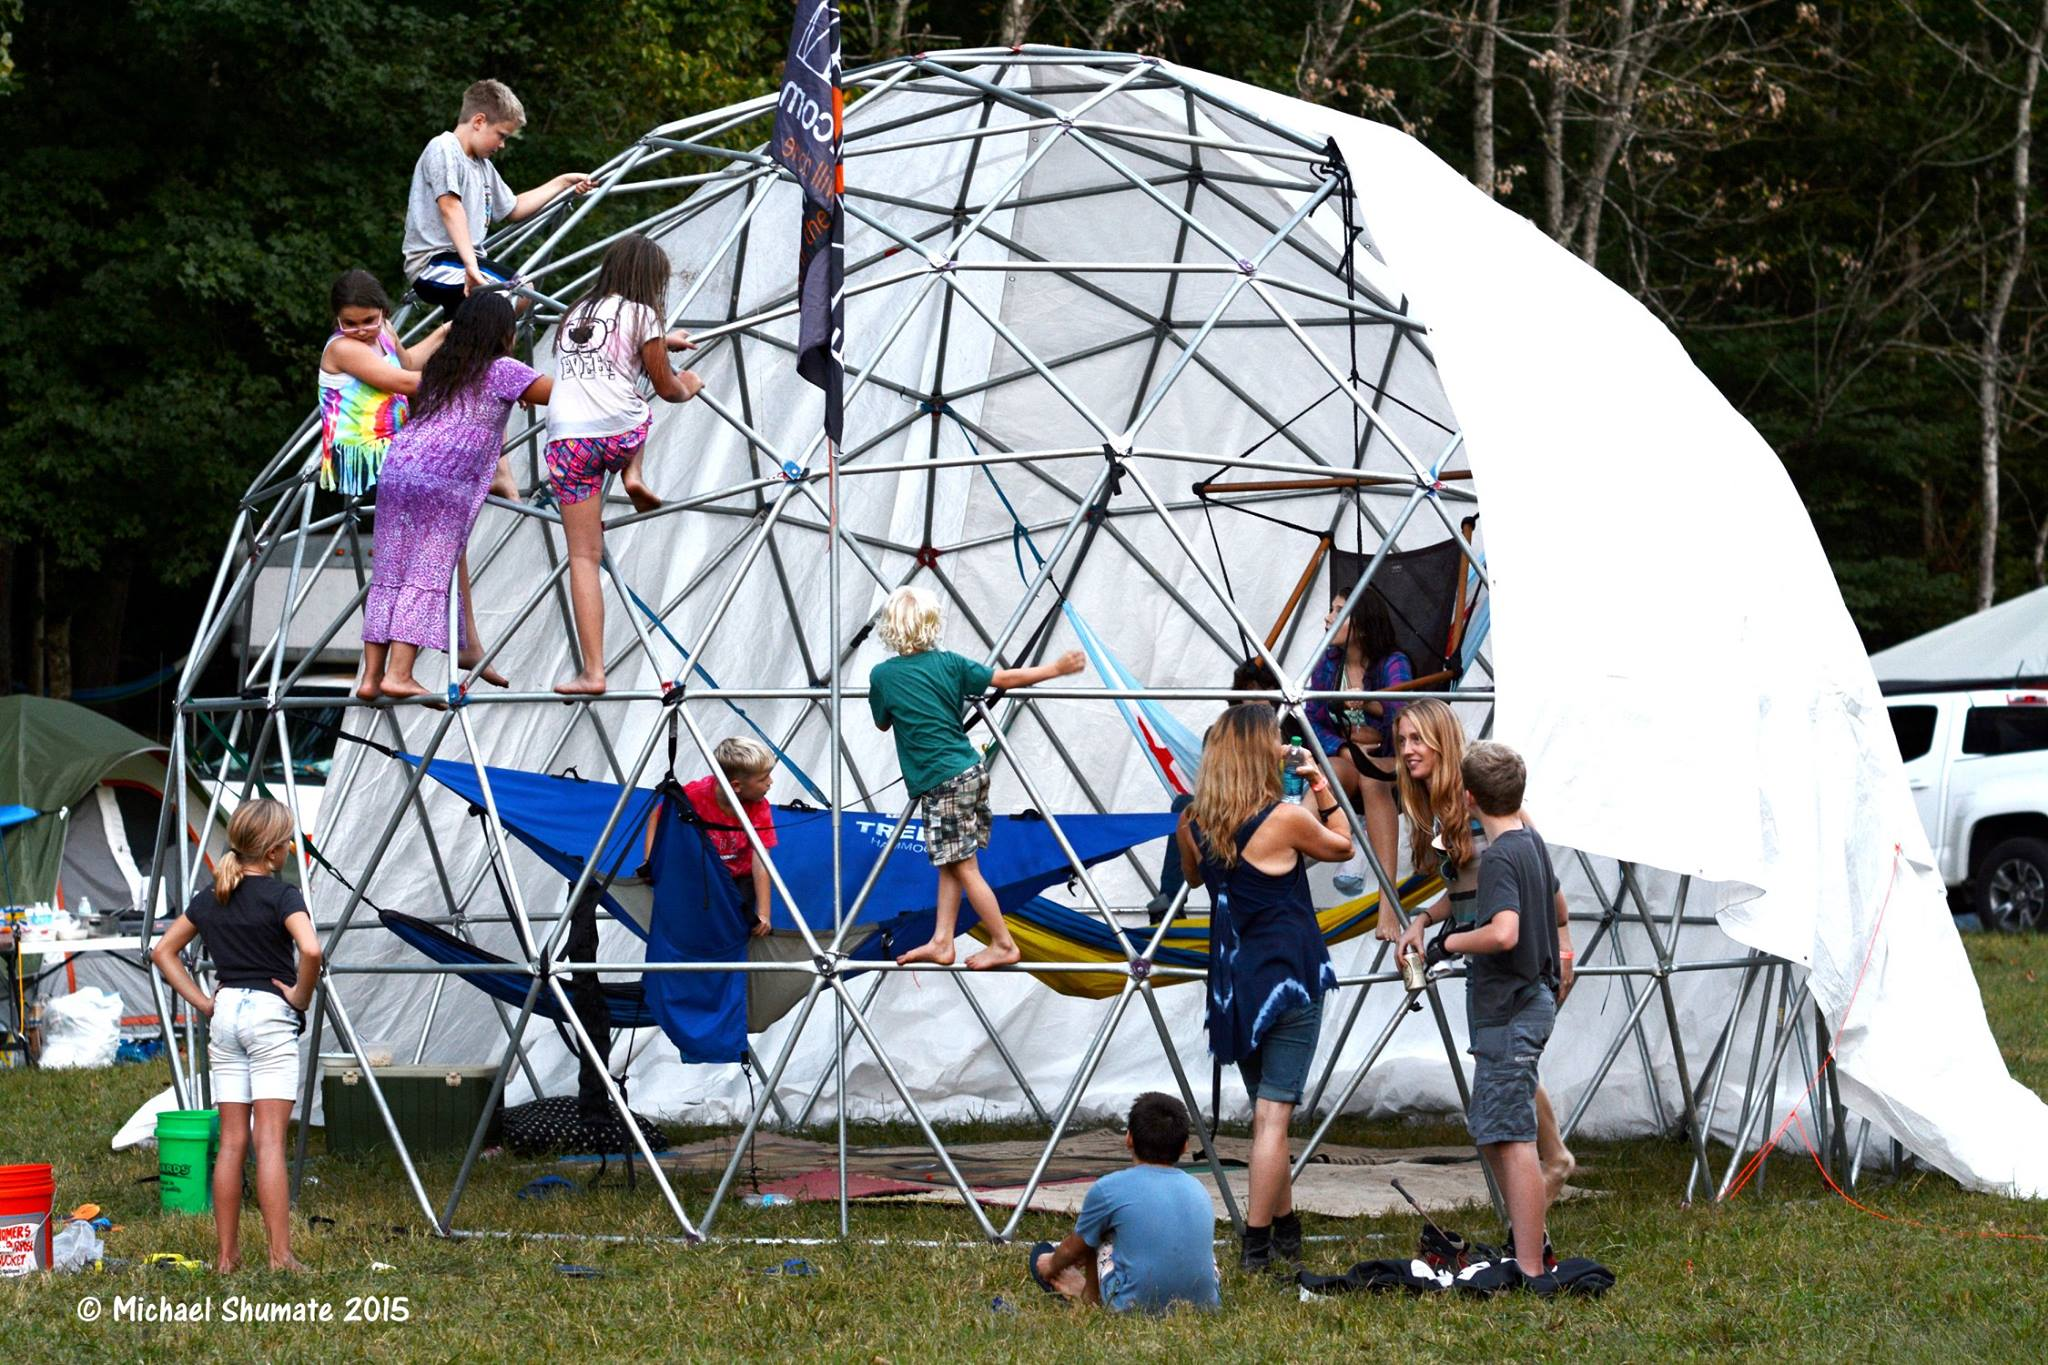 kids climbing on dome fe 2015 by michael shumate